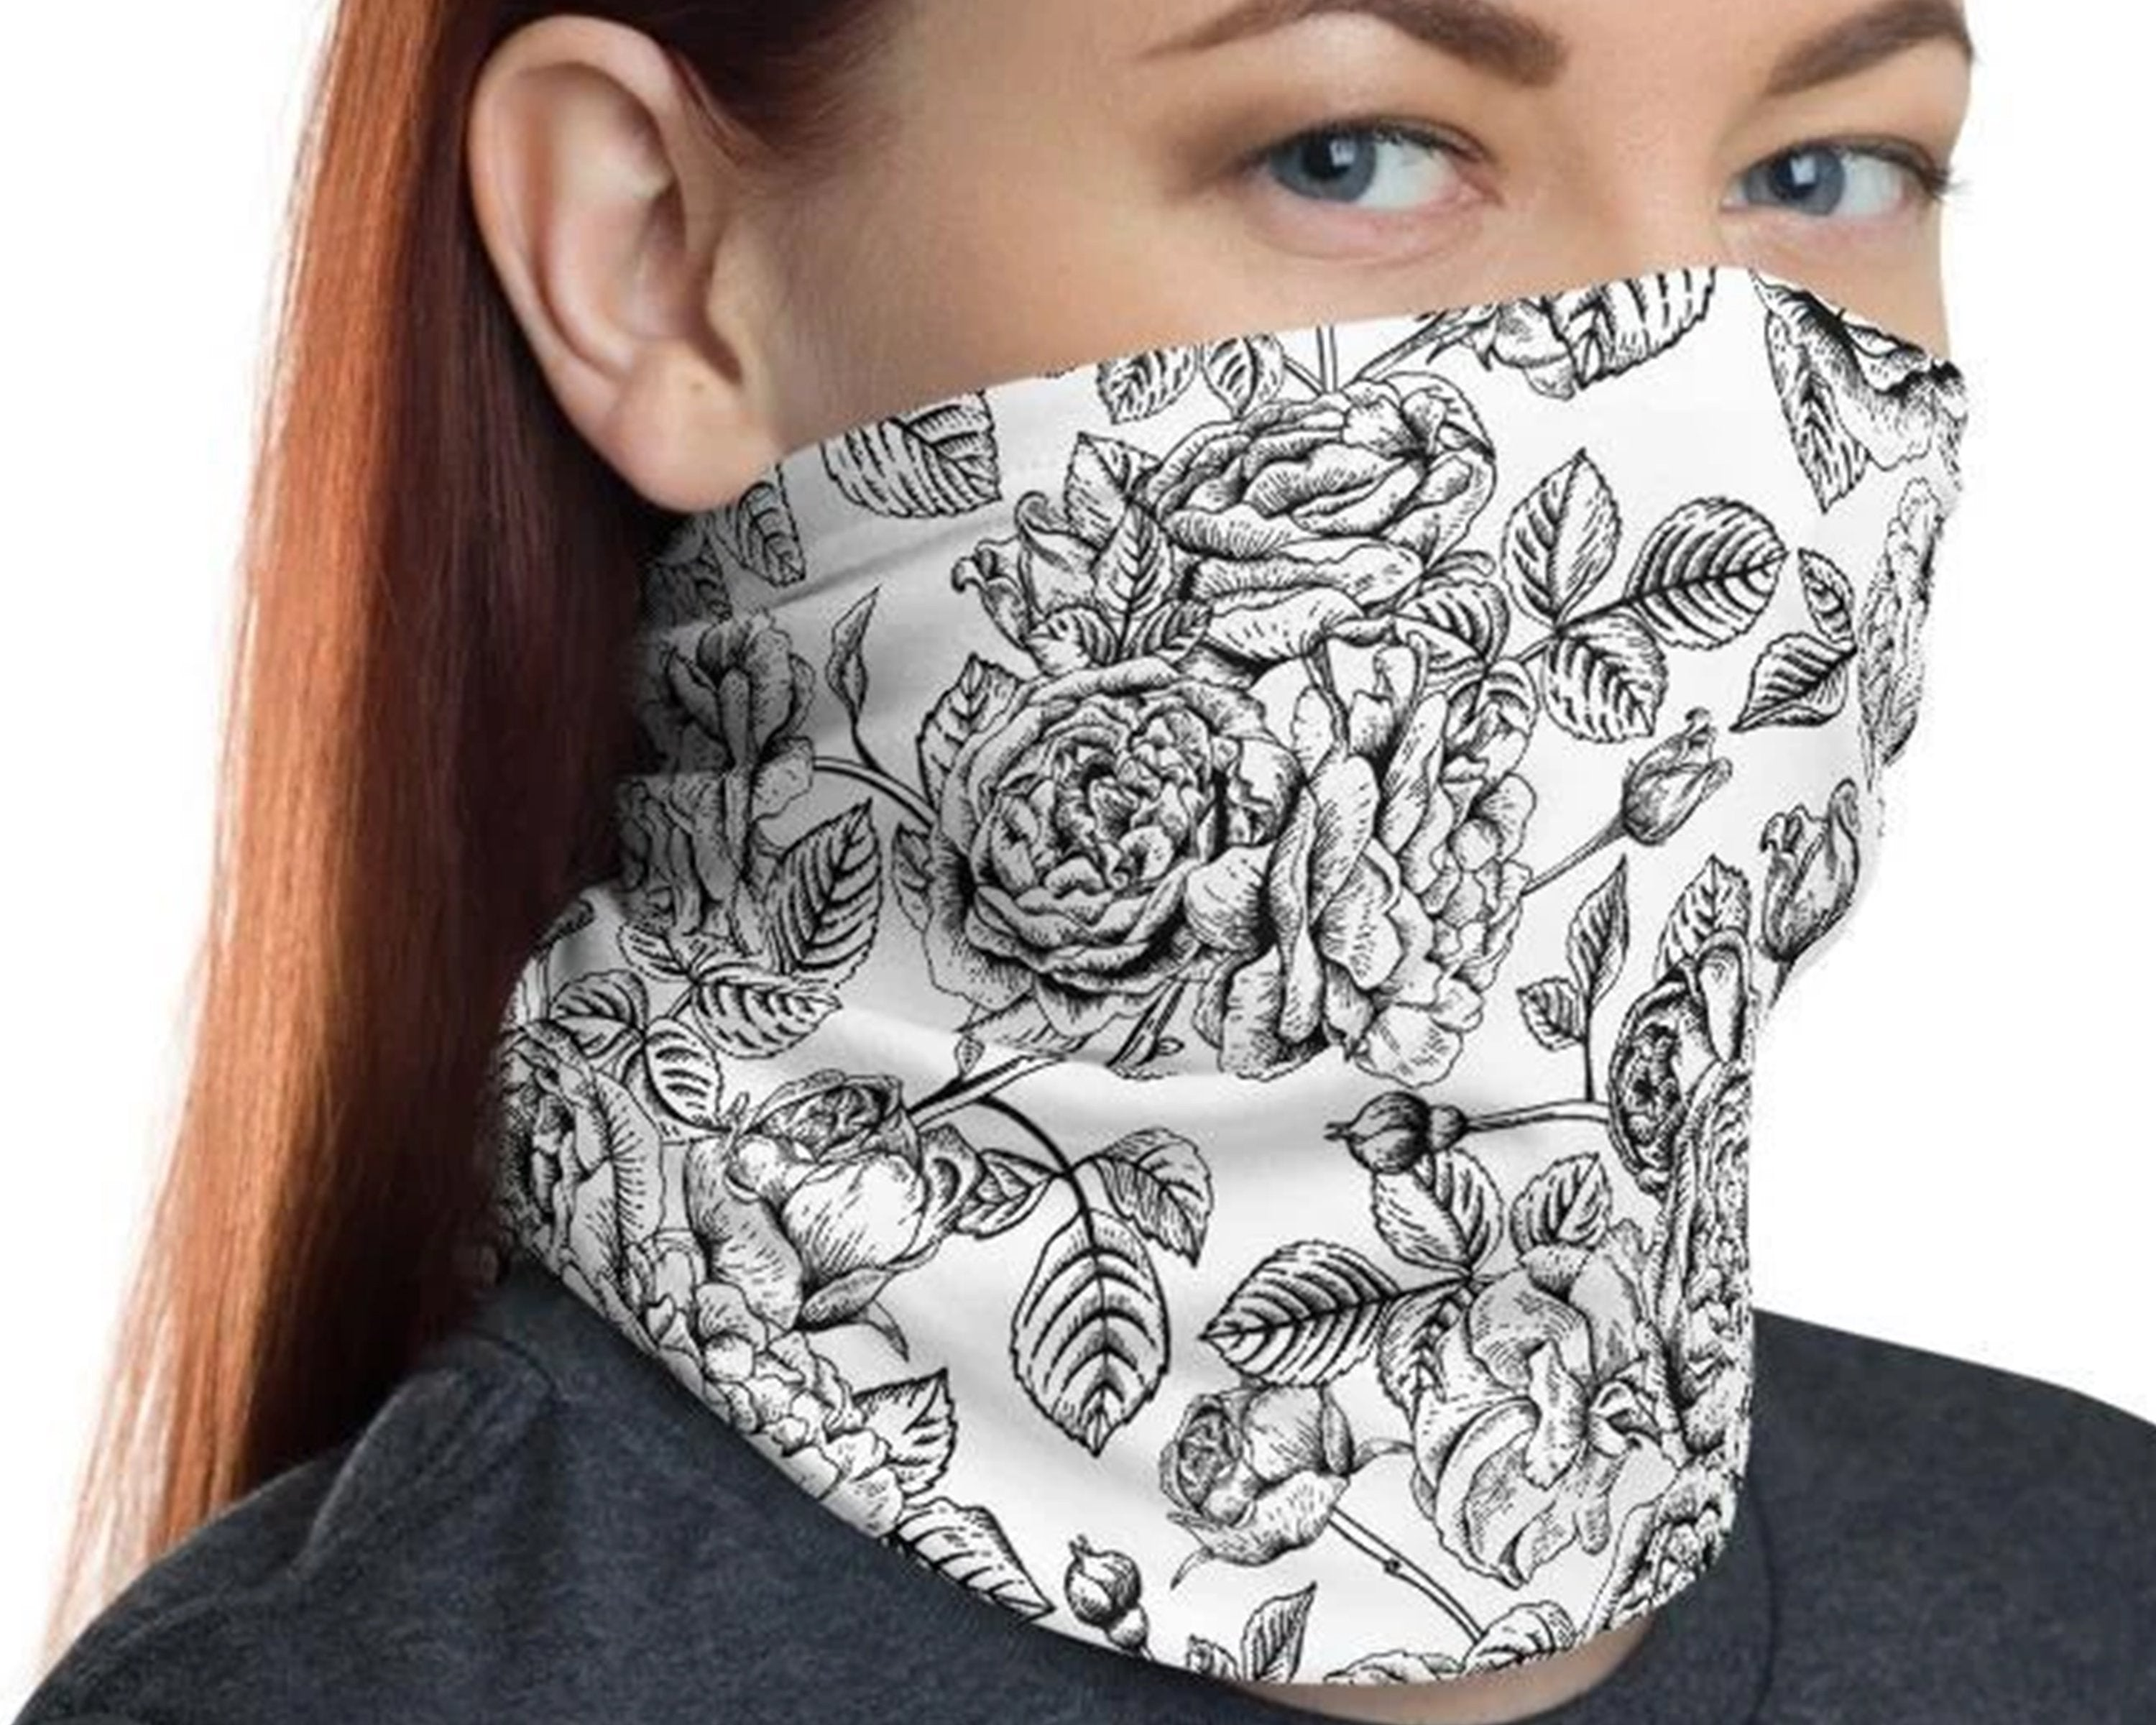 Classic Solid Colors, 12 Summer Face Cover UV Protection Neck Gaiter Scarf Sunscreen Breathable Bandana